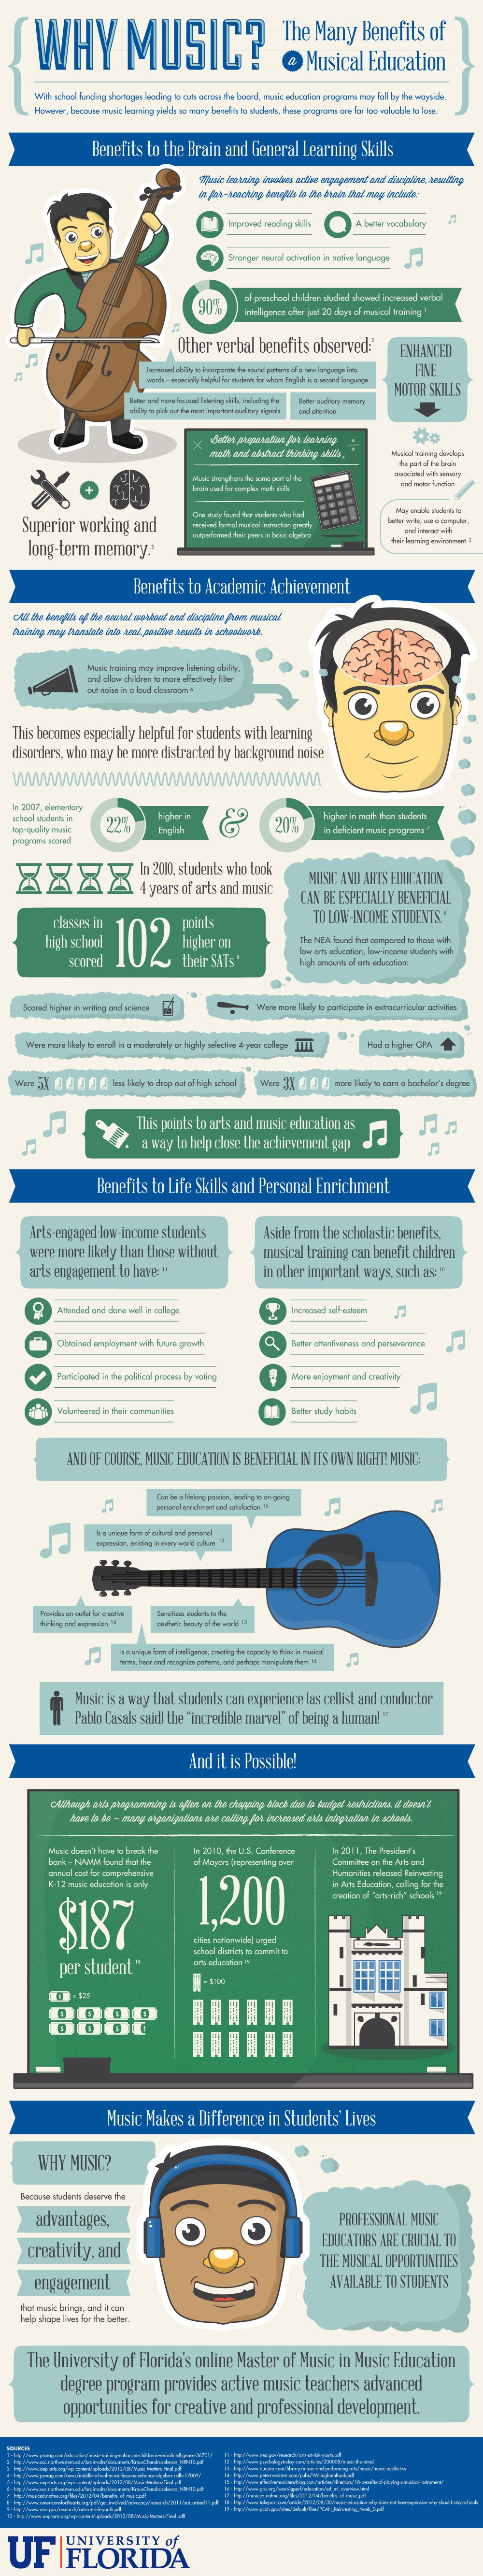 Benefits-of-Music-Education-Infographic